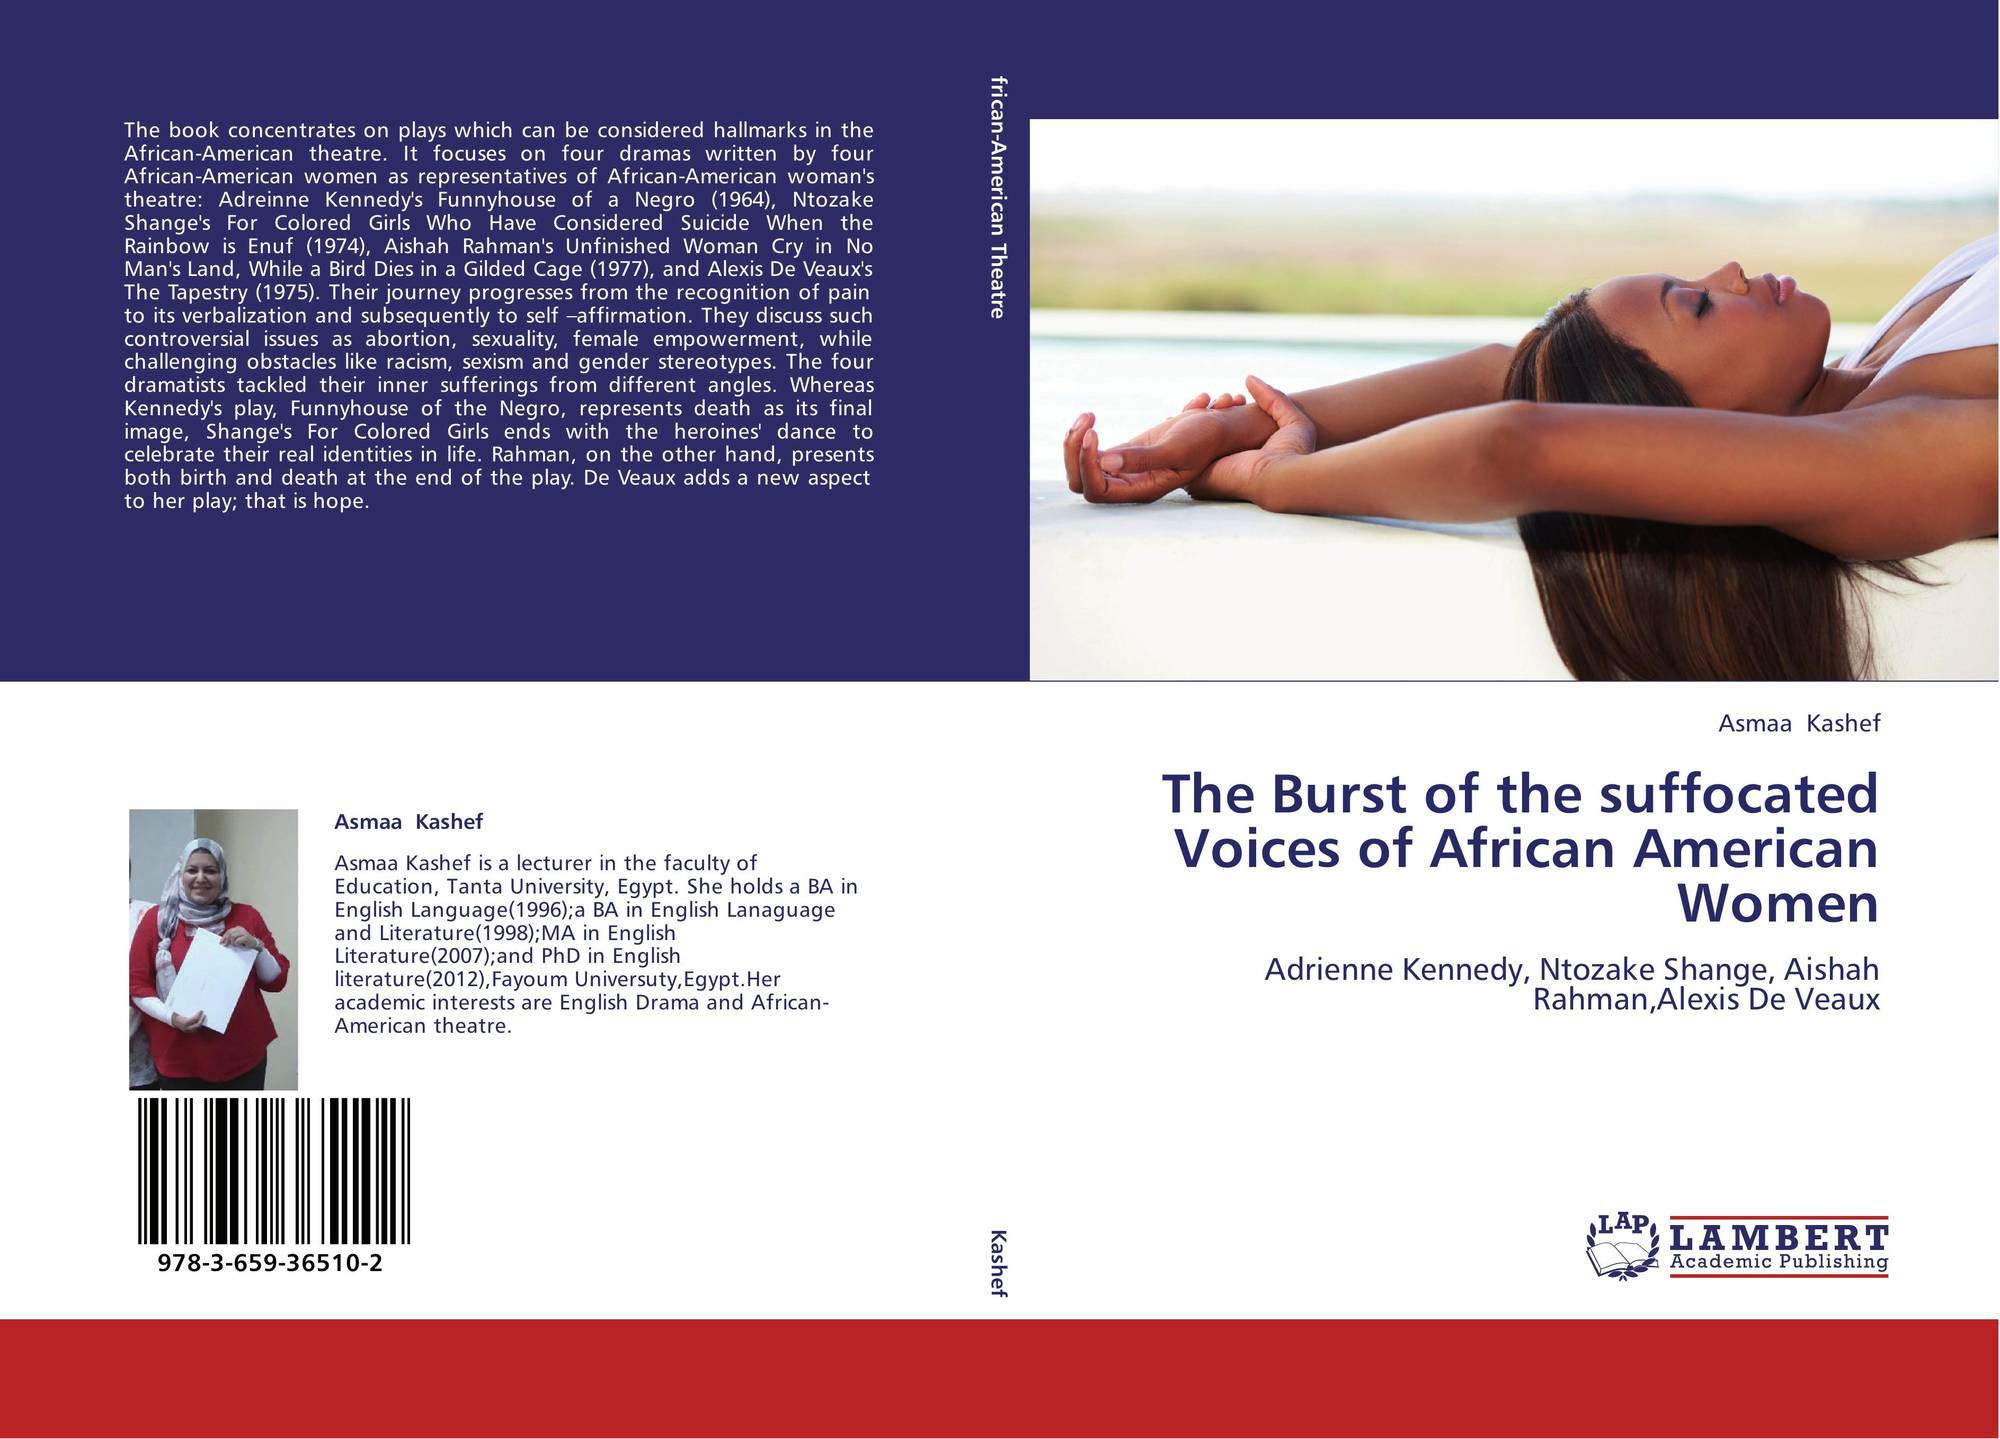 perceptions of african american women 2 essay Graduate theses and dissertations graduate college 2013 african american women's use of cosmetics products in relation to their attitudes and self.